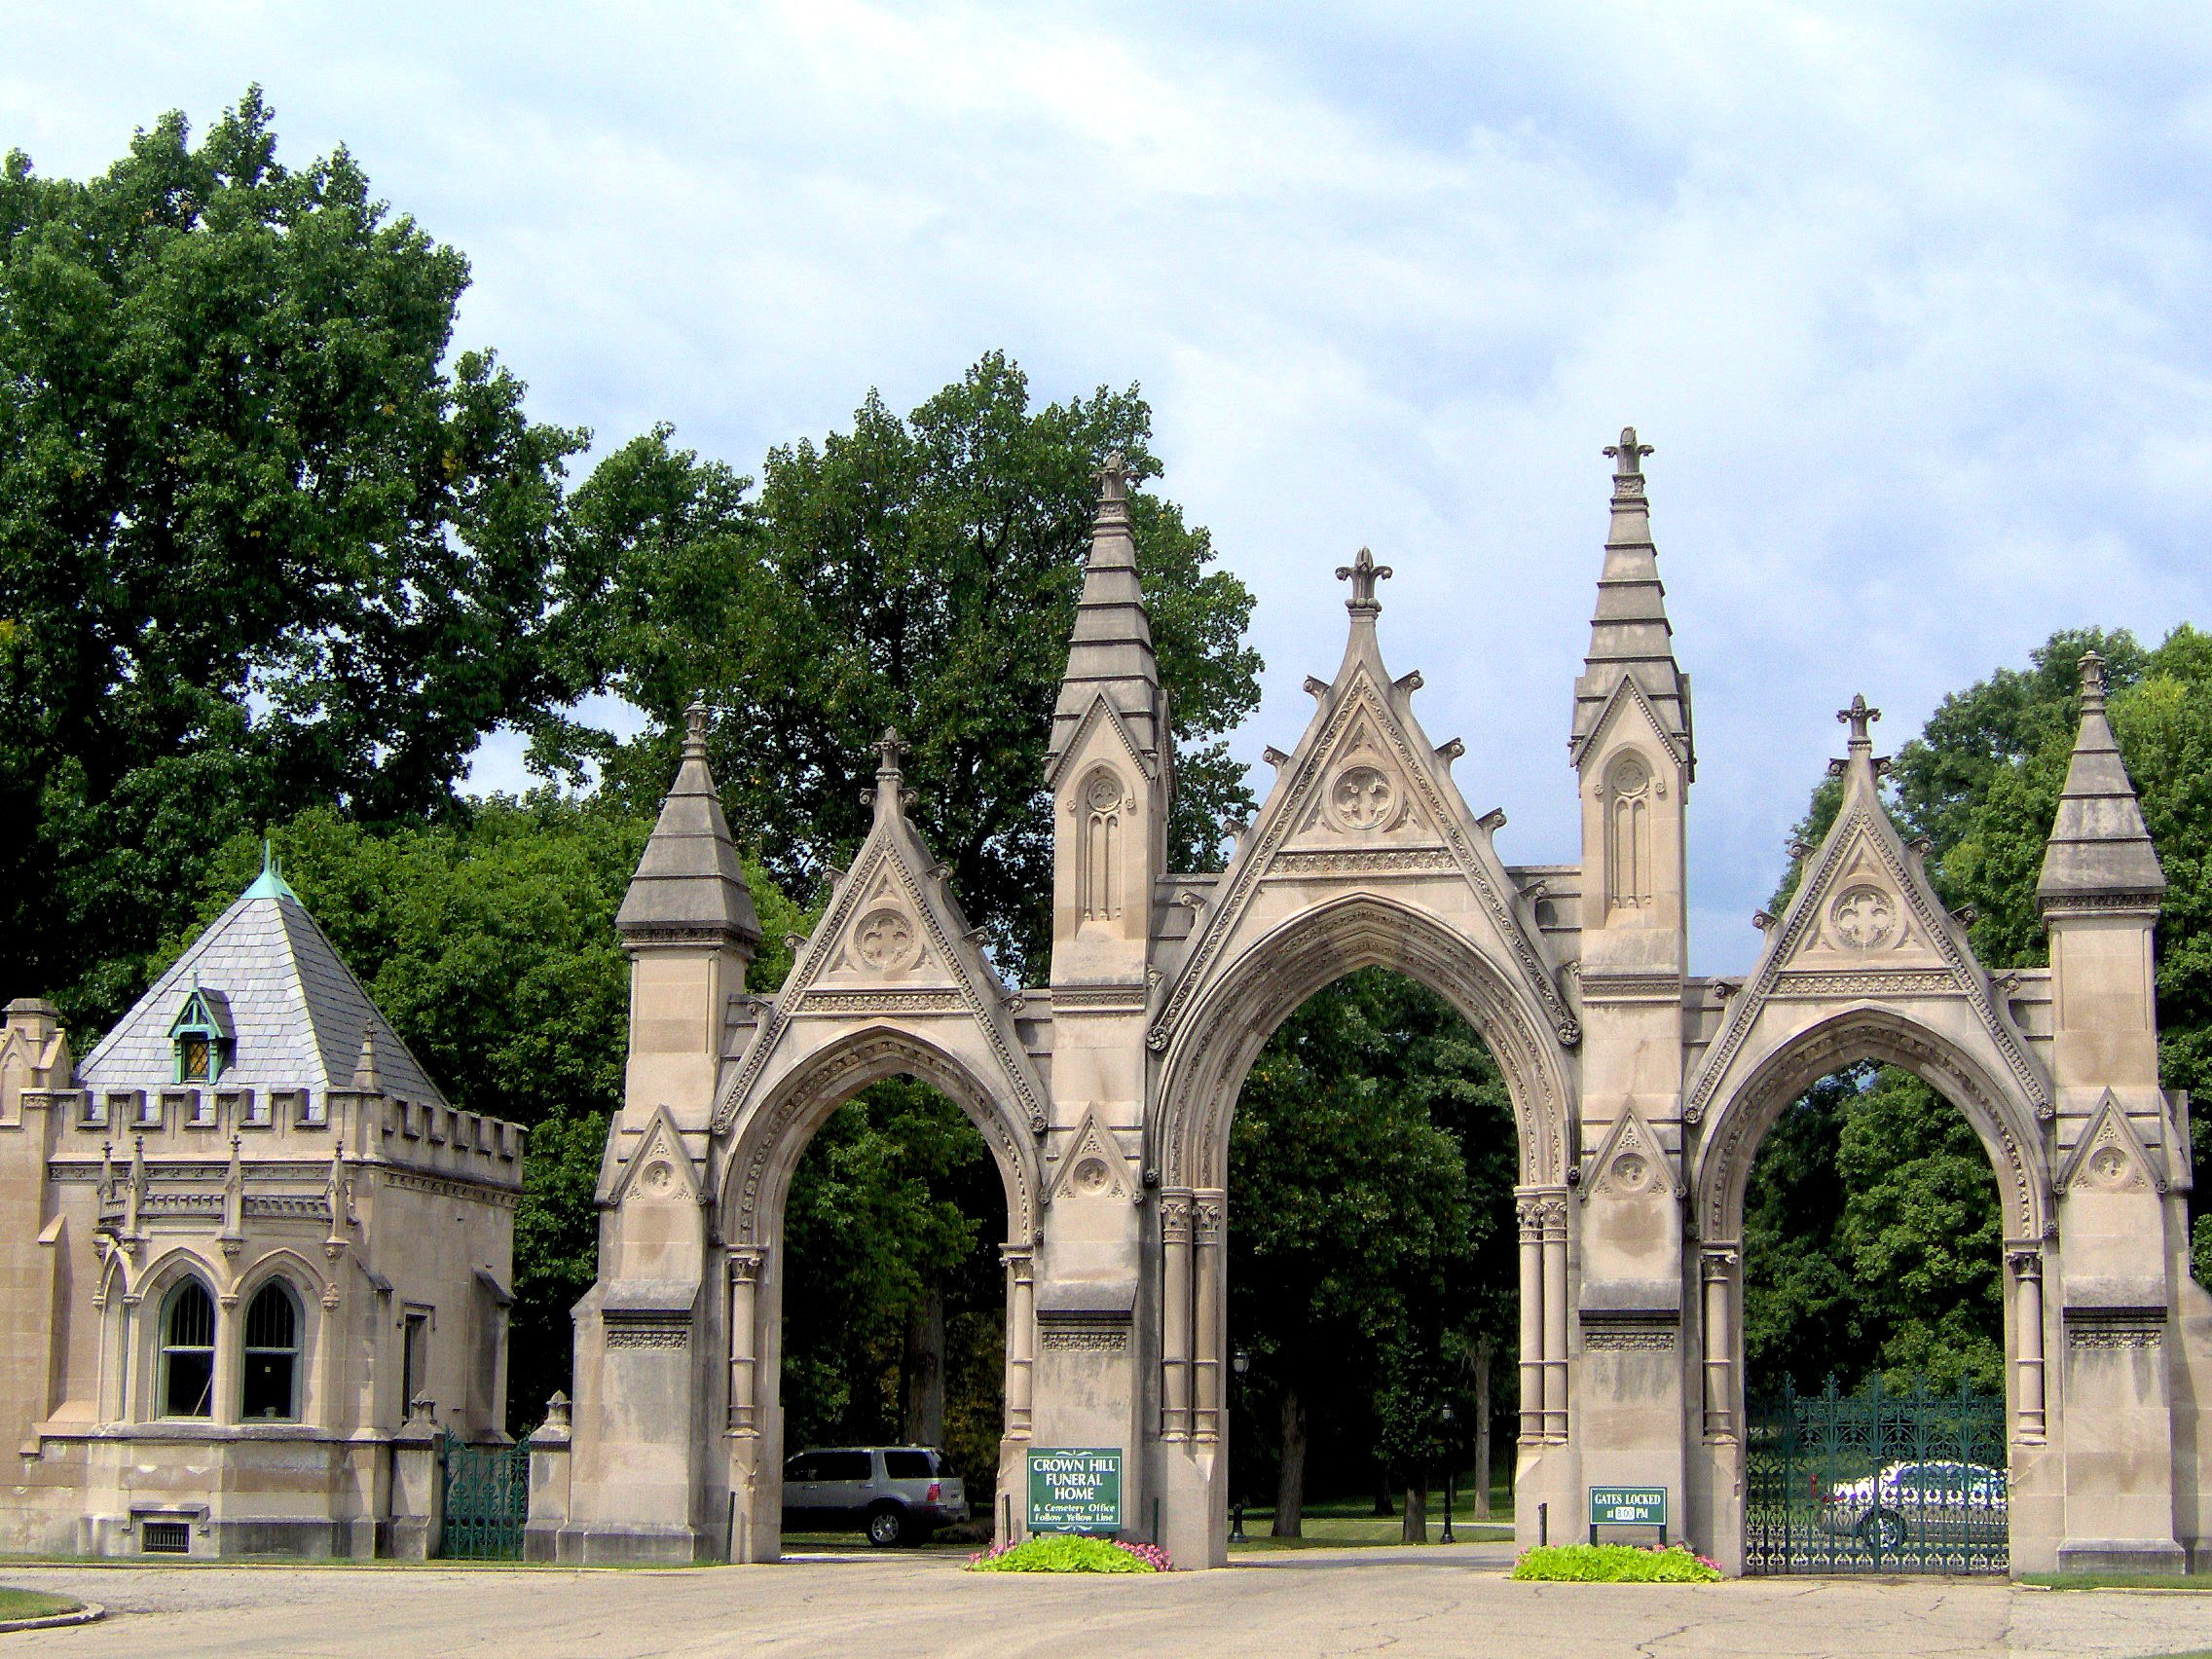 Crown Hill's famous triple-arched east entrance, located on 34th Street, was completed in 1885.